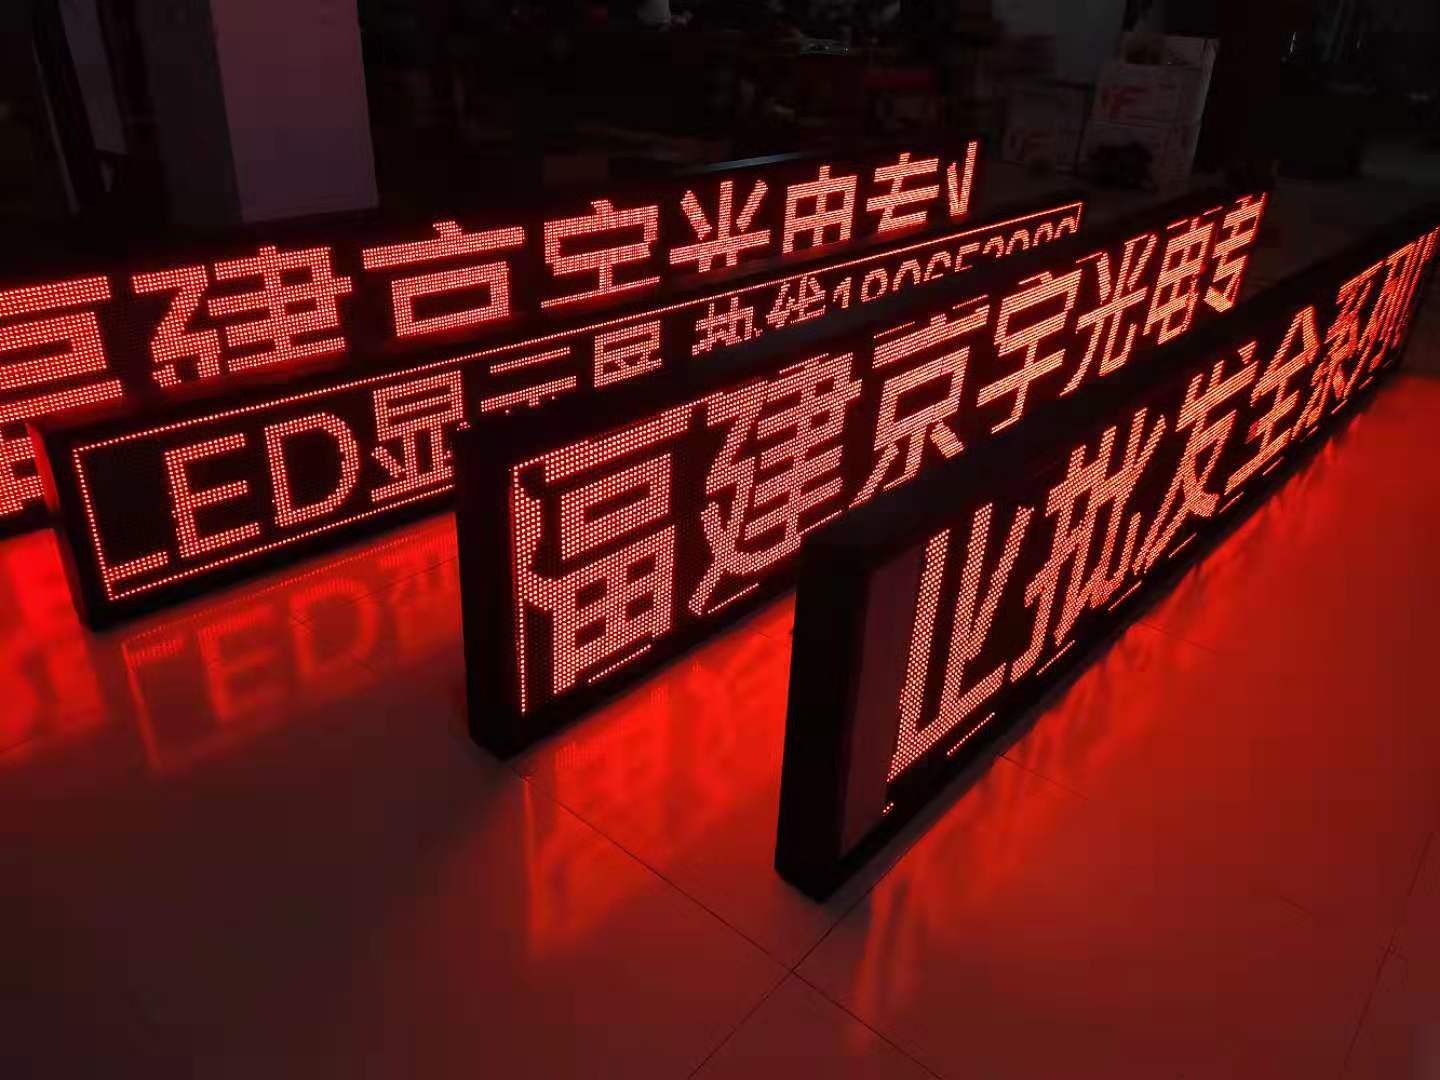 Full series of LED display screen for indooroutdoor advertising